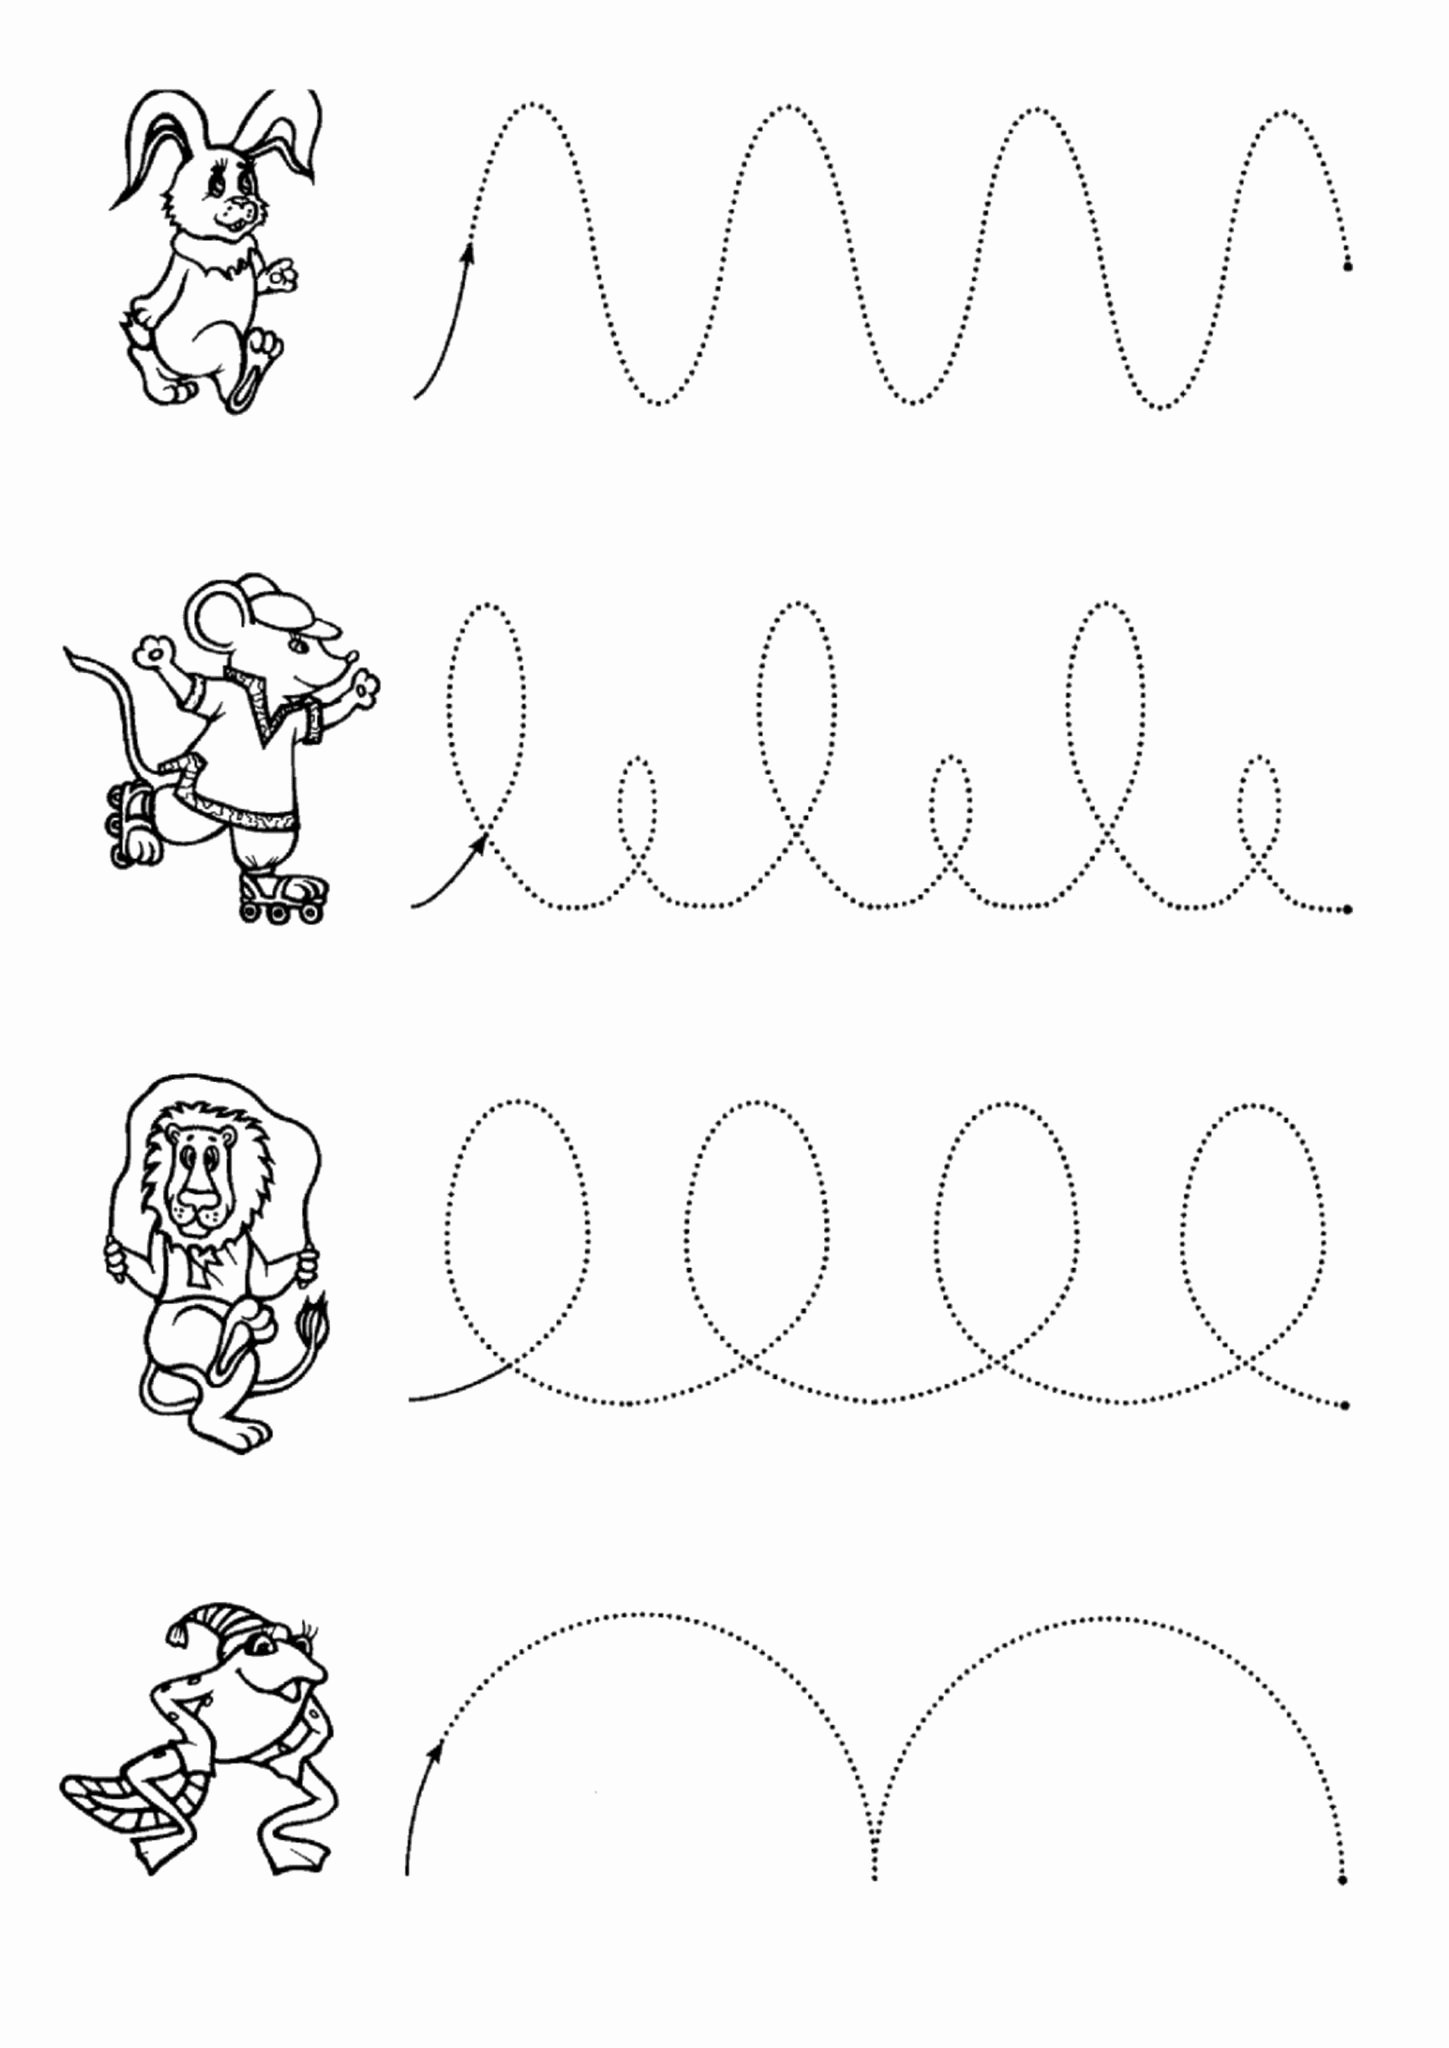 Christmas Pattern Worksheets for Preschoolers Fresh Pattern Worksheets Printable and Activities for First Grade